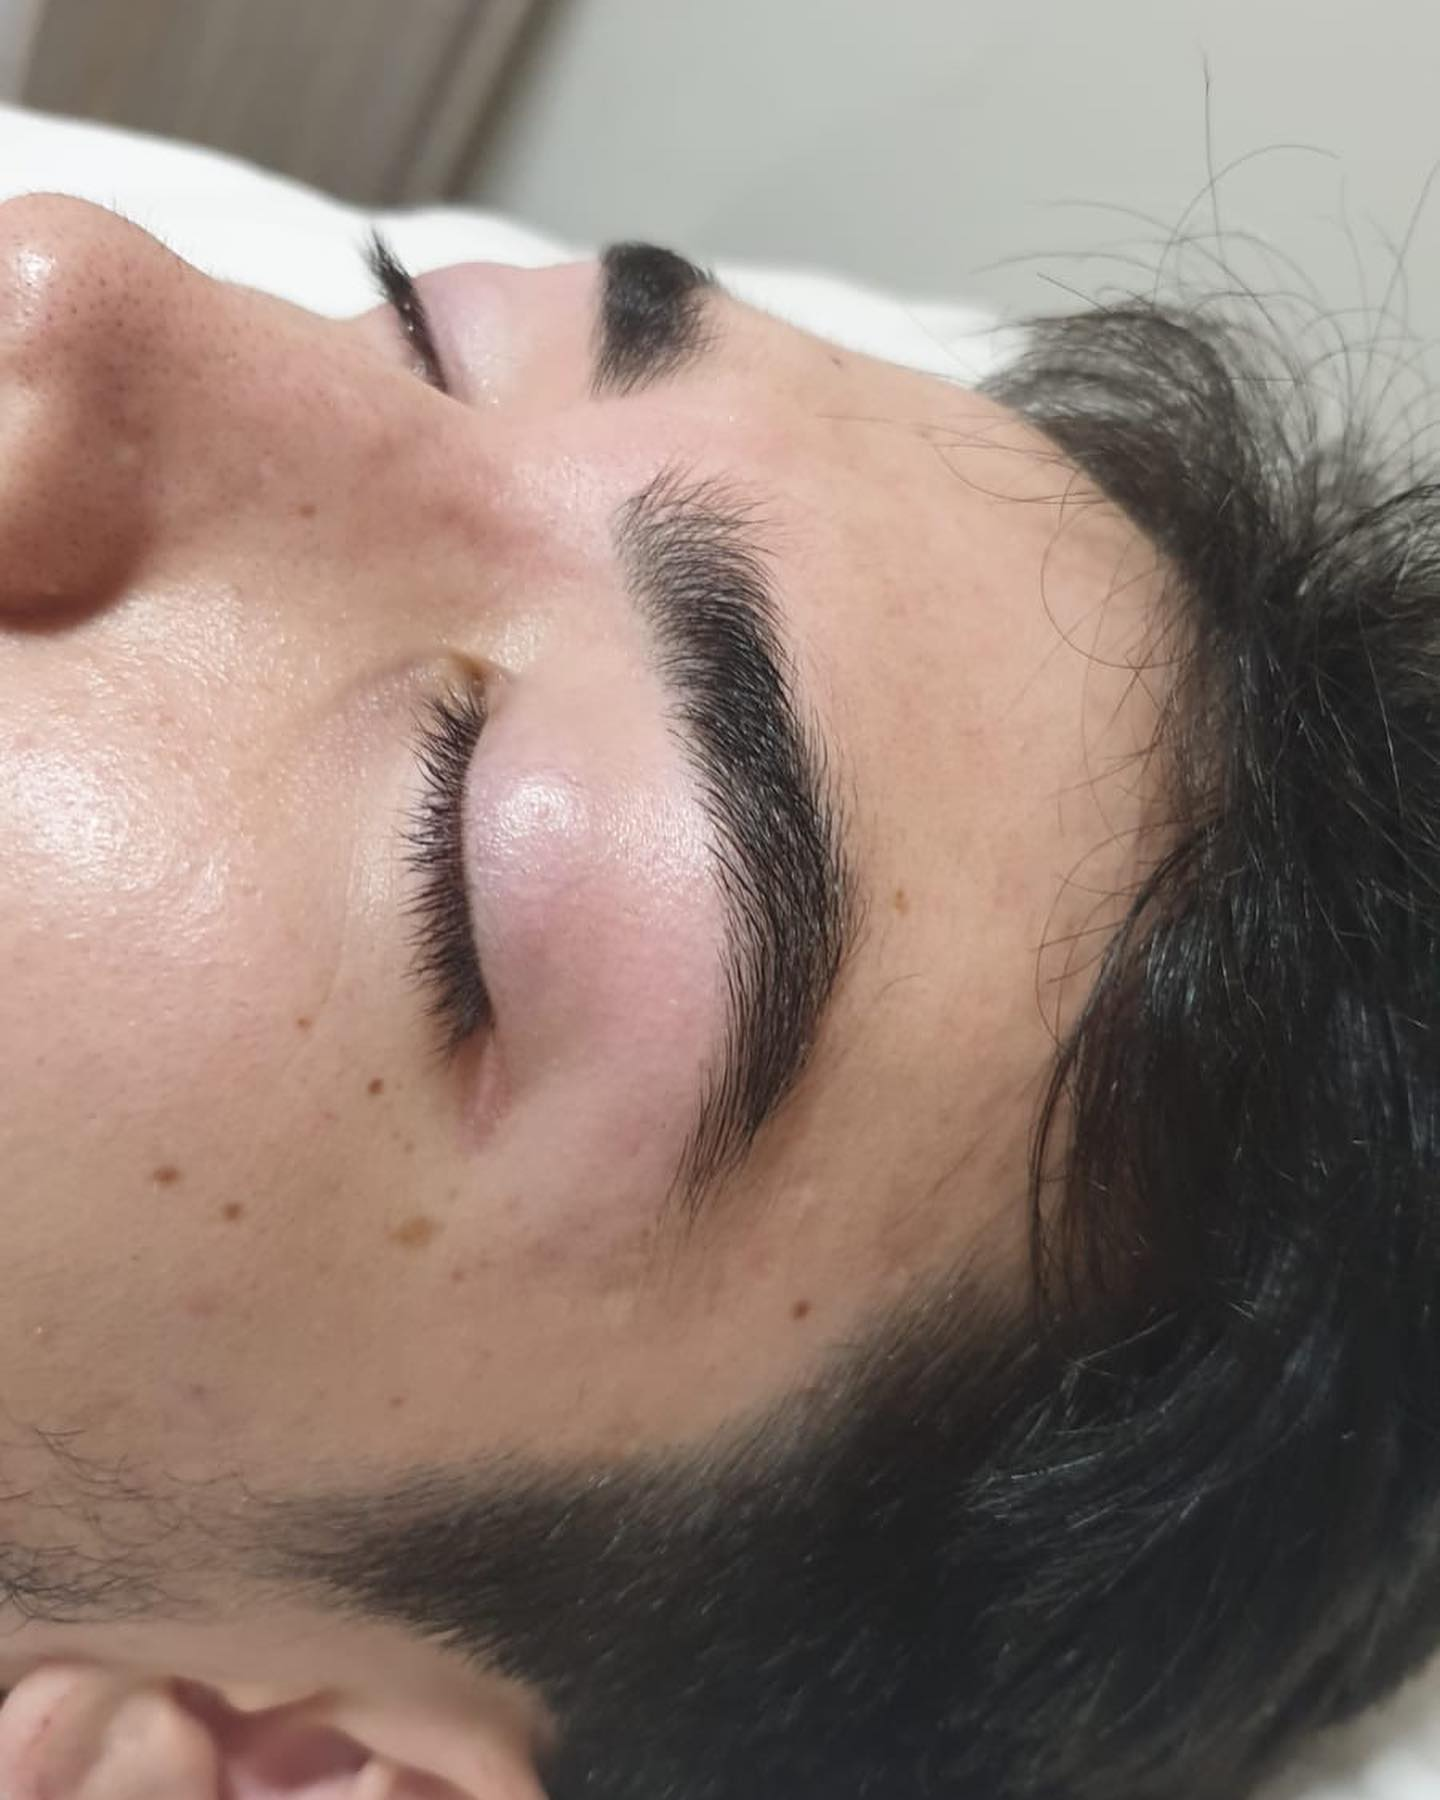 Gentlemen's eyebrows after shaping